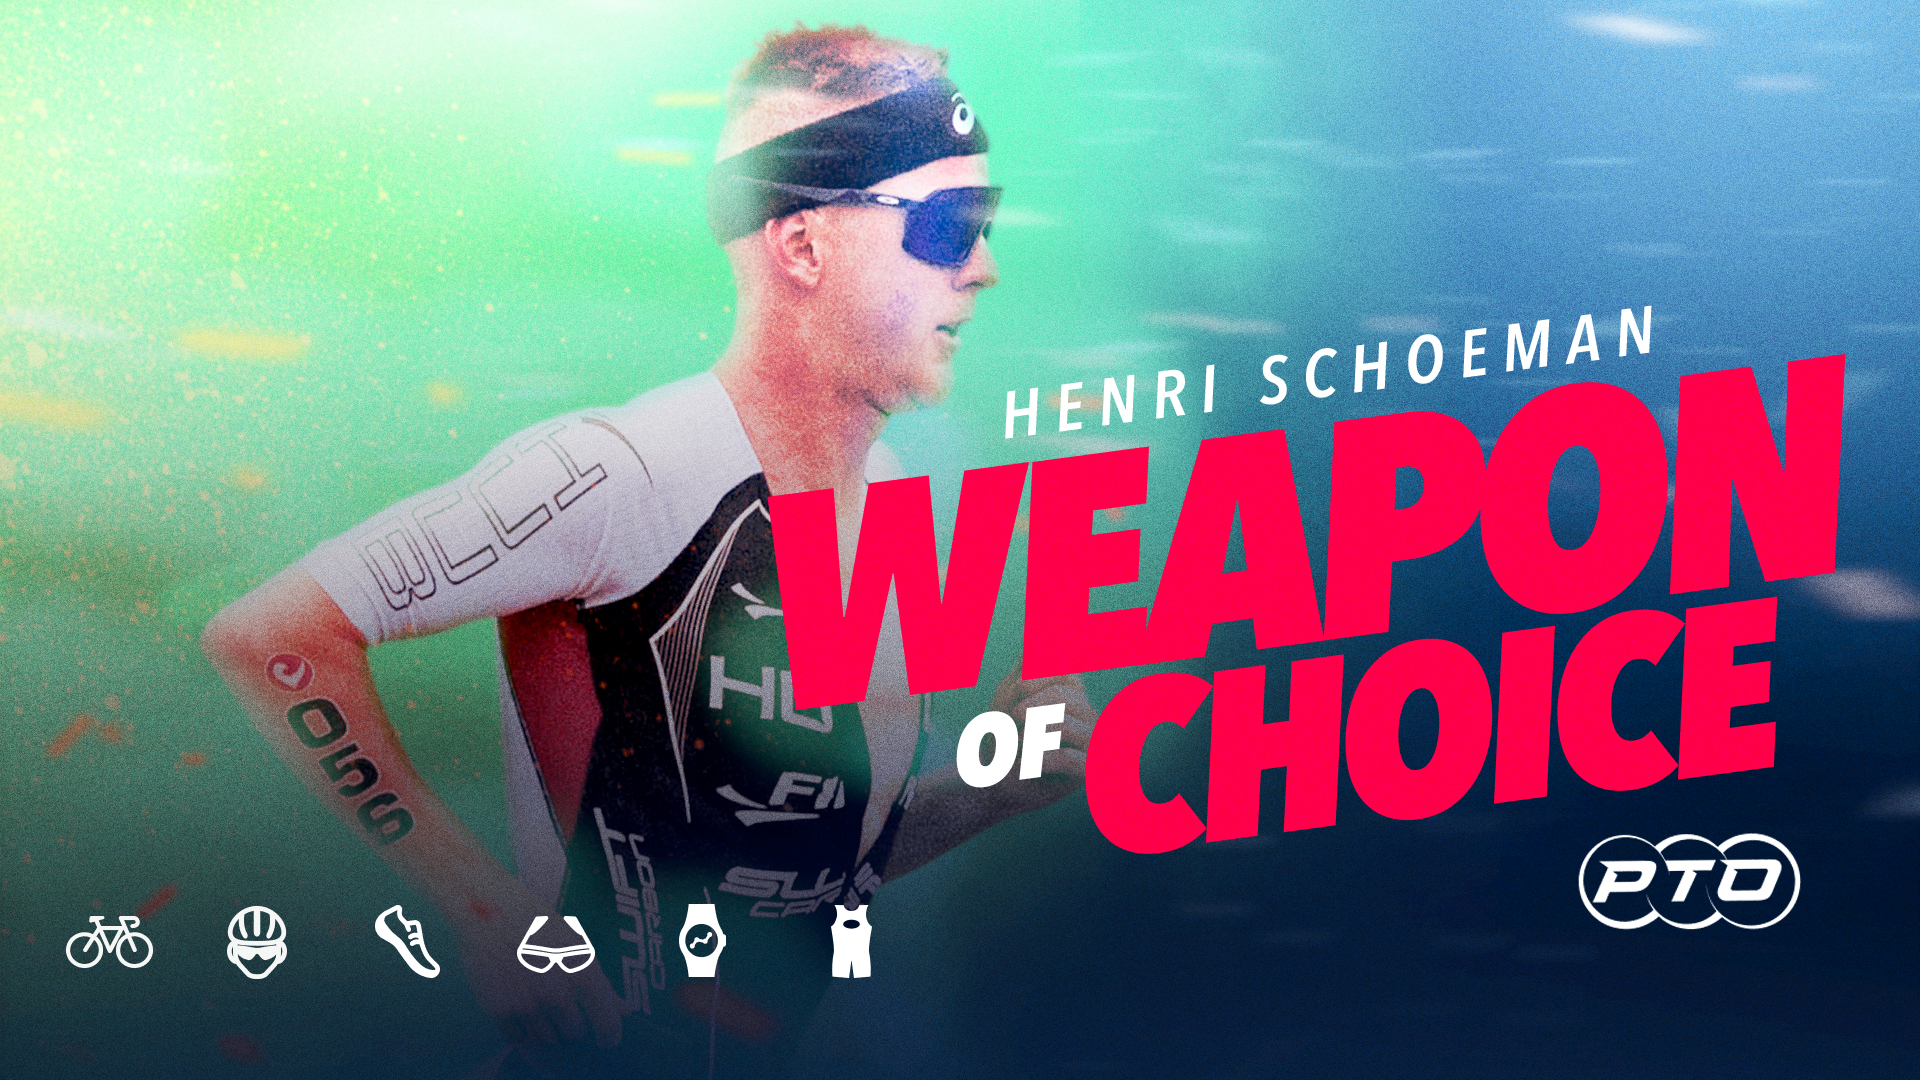 Weapon of Choice || Henri Schoeman